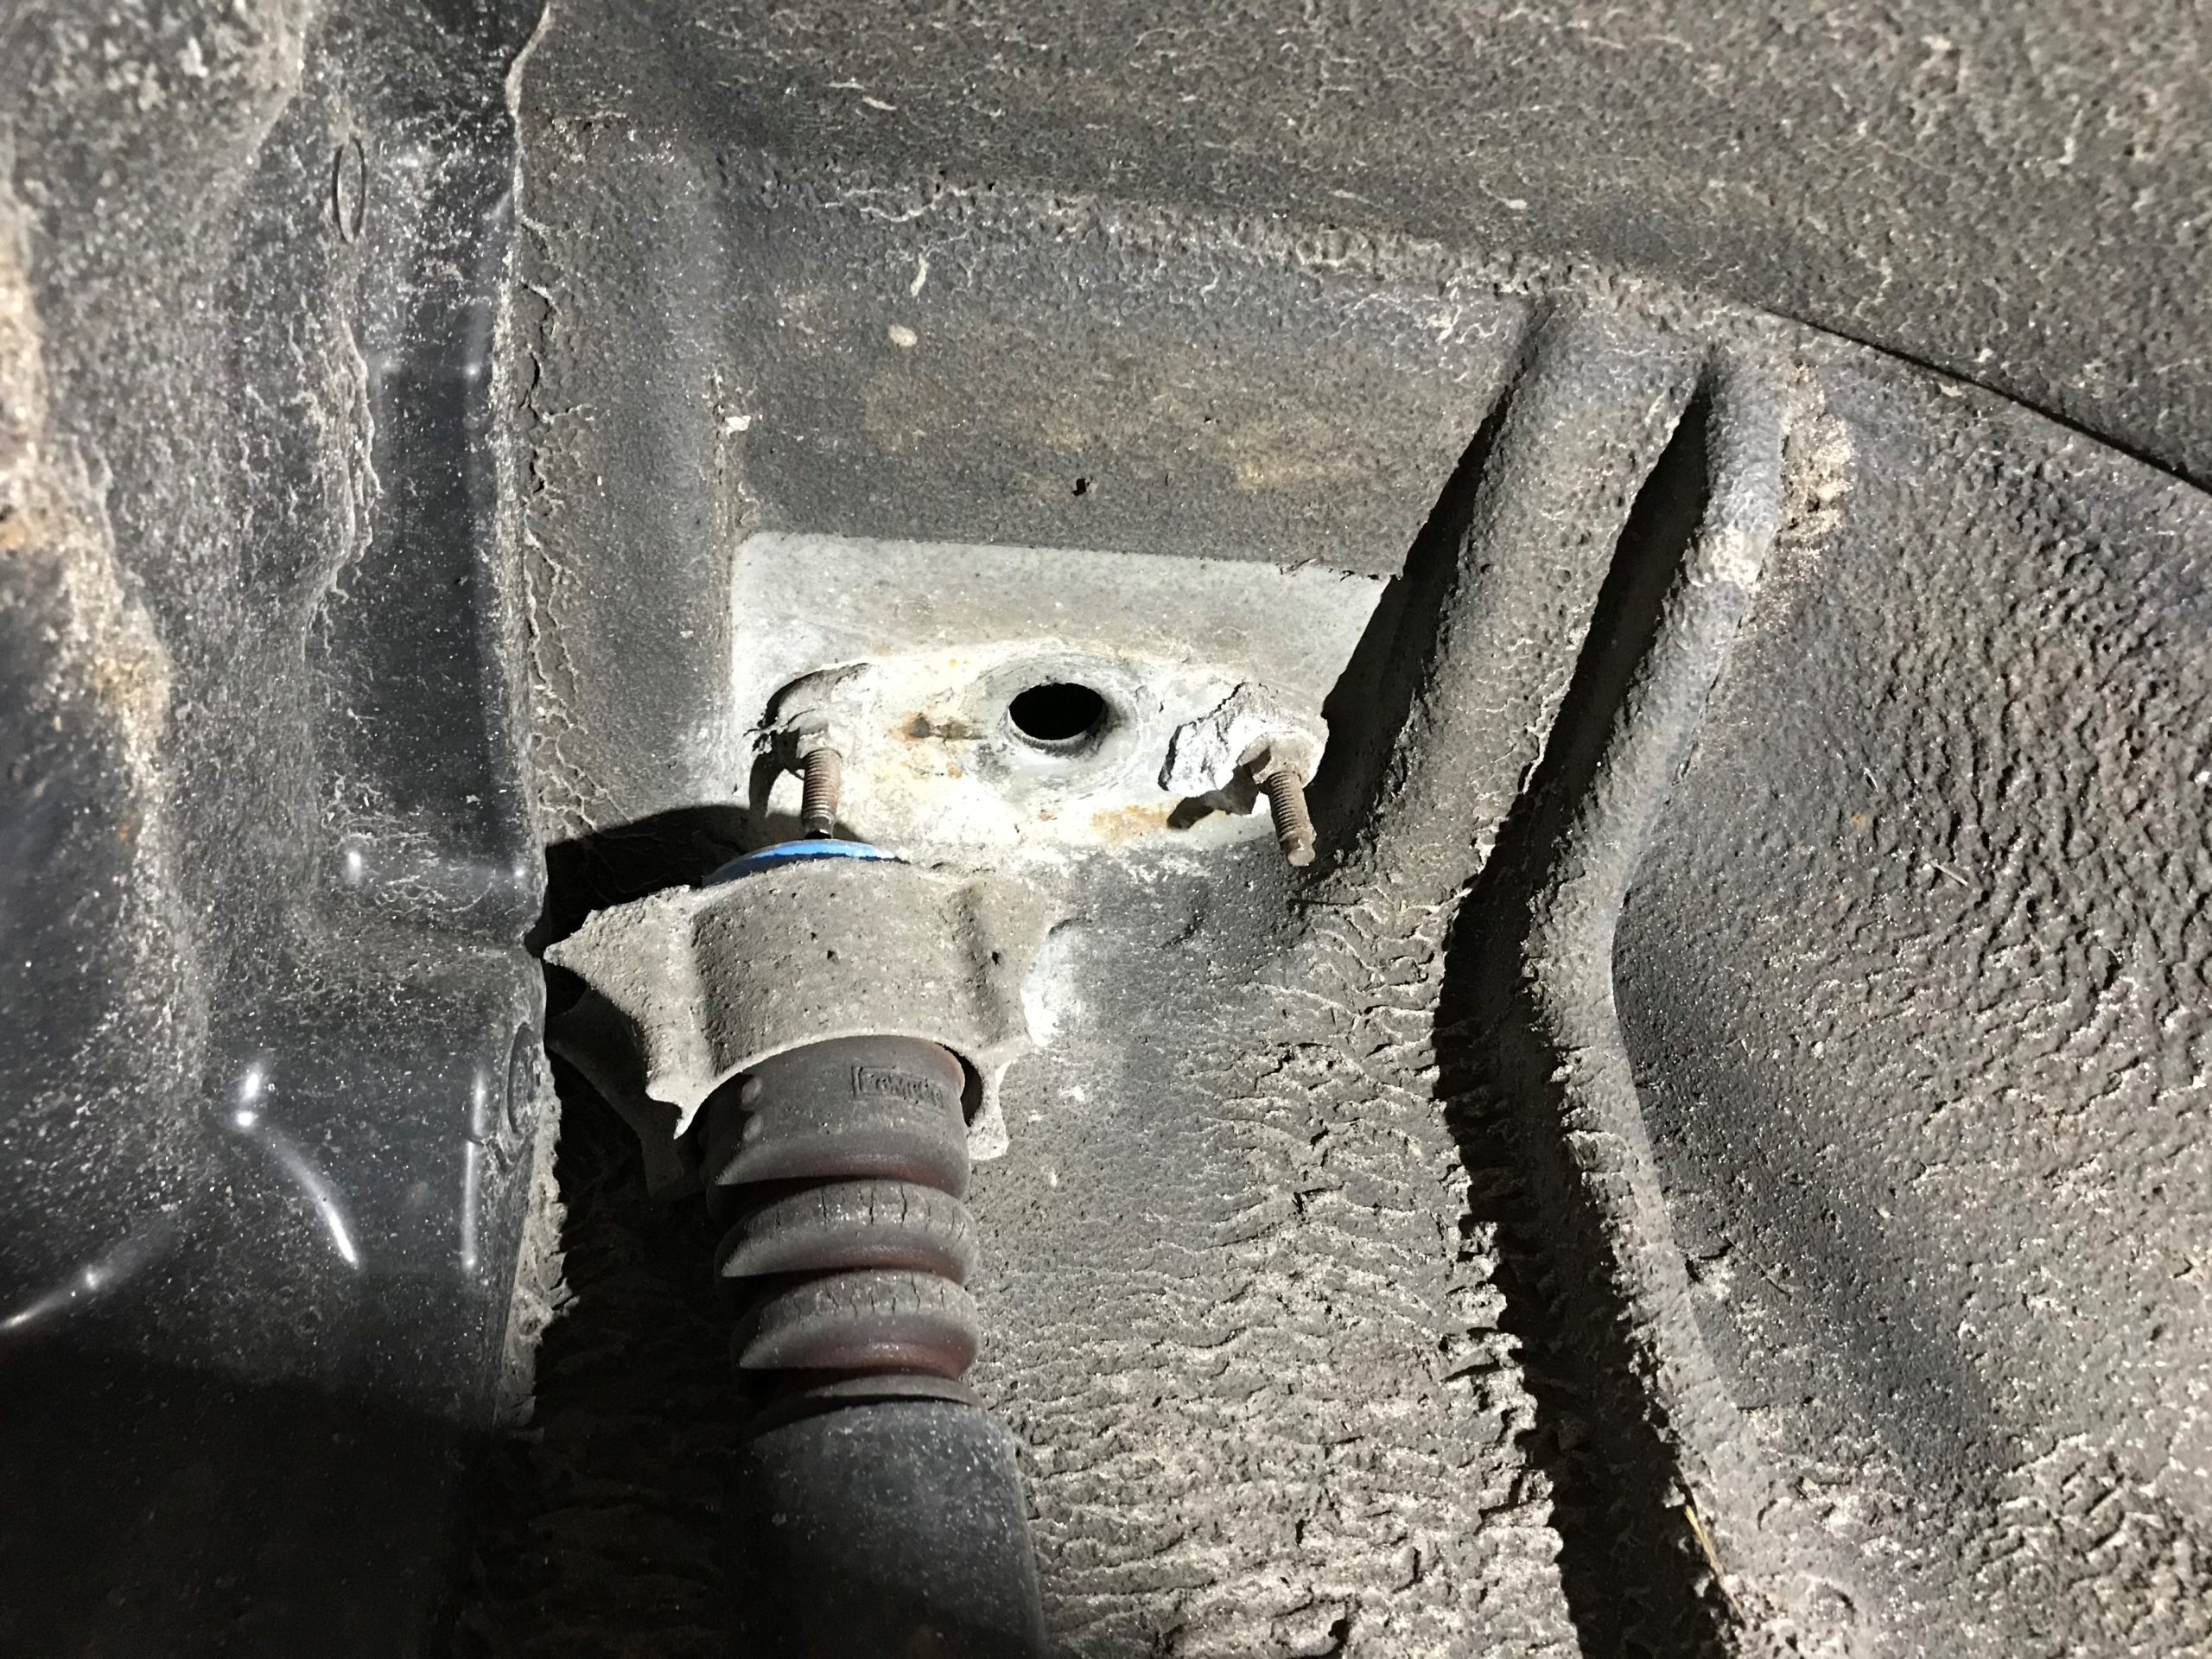 Broken Shock Absorber Mount